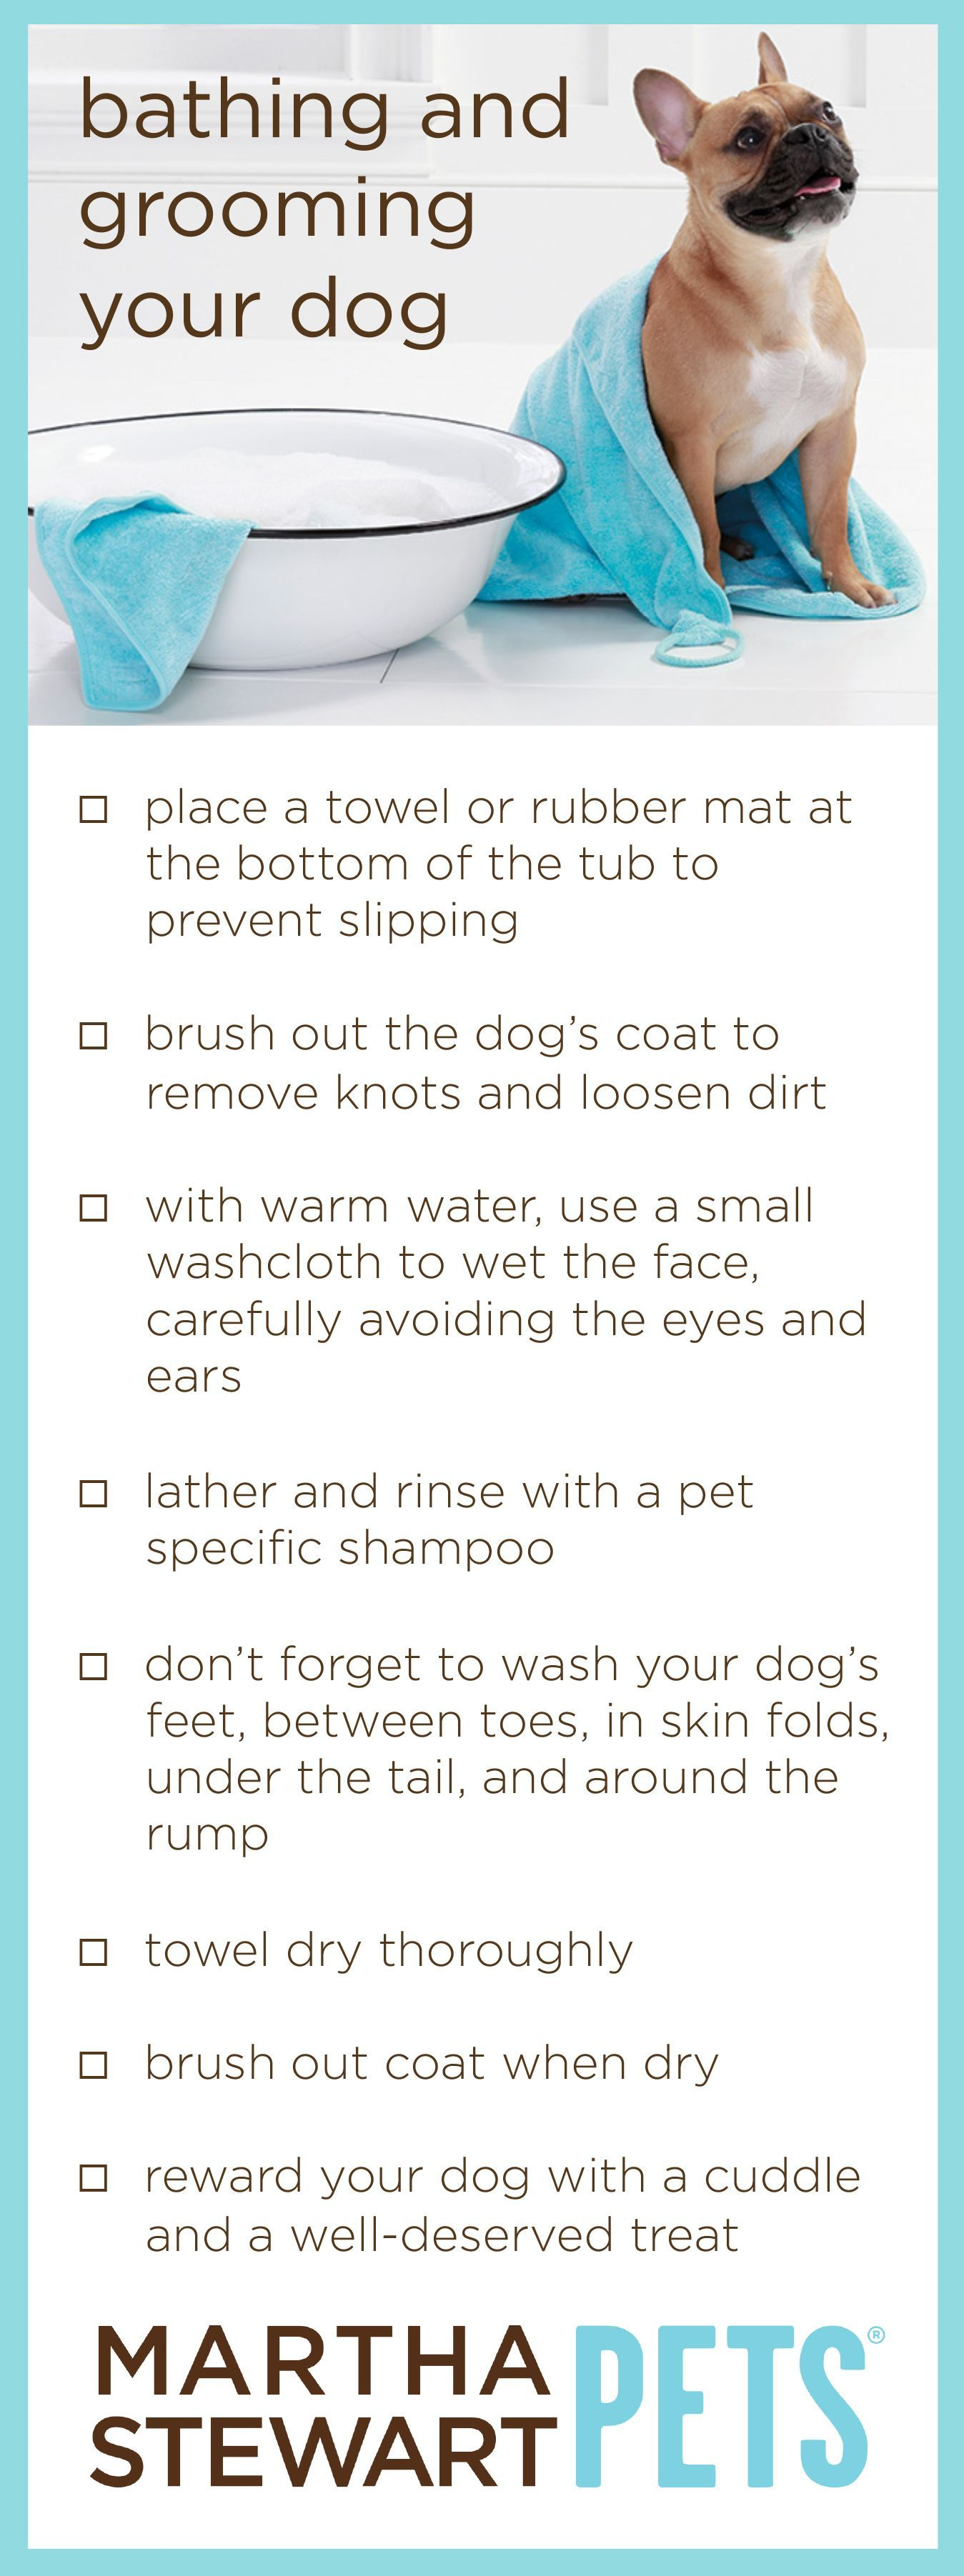 Martha stewart pets tips on bathing and grooming your dog